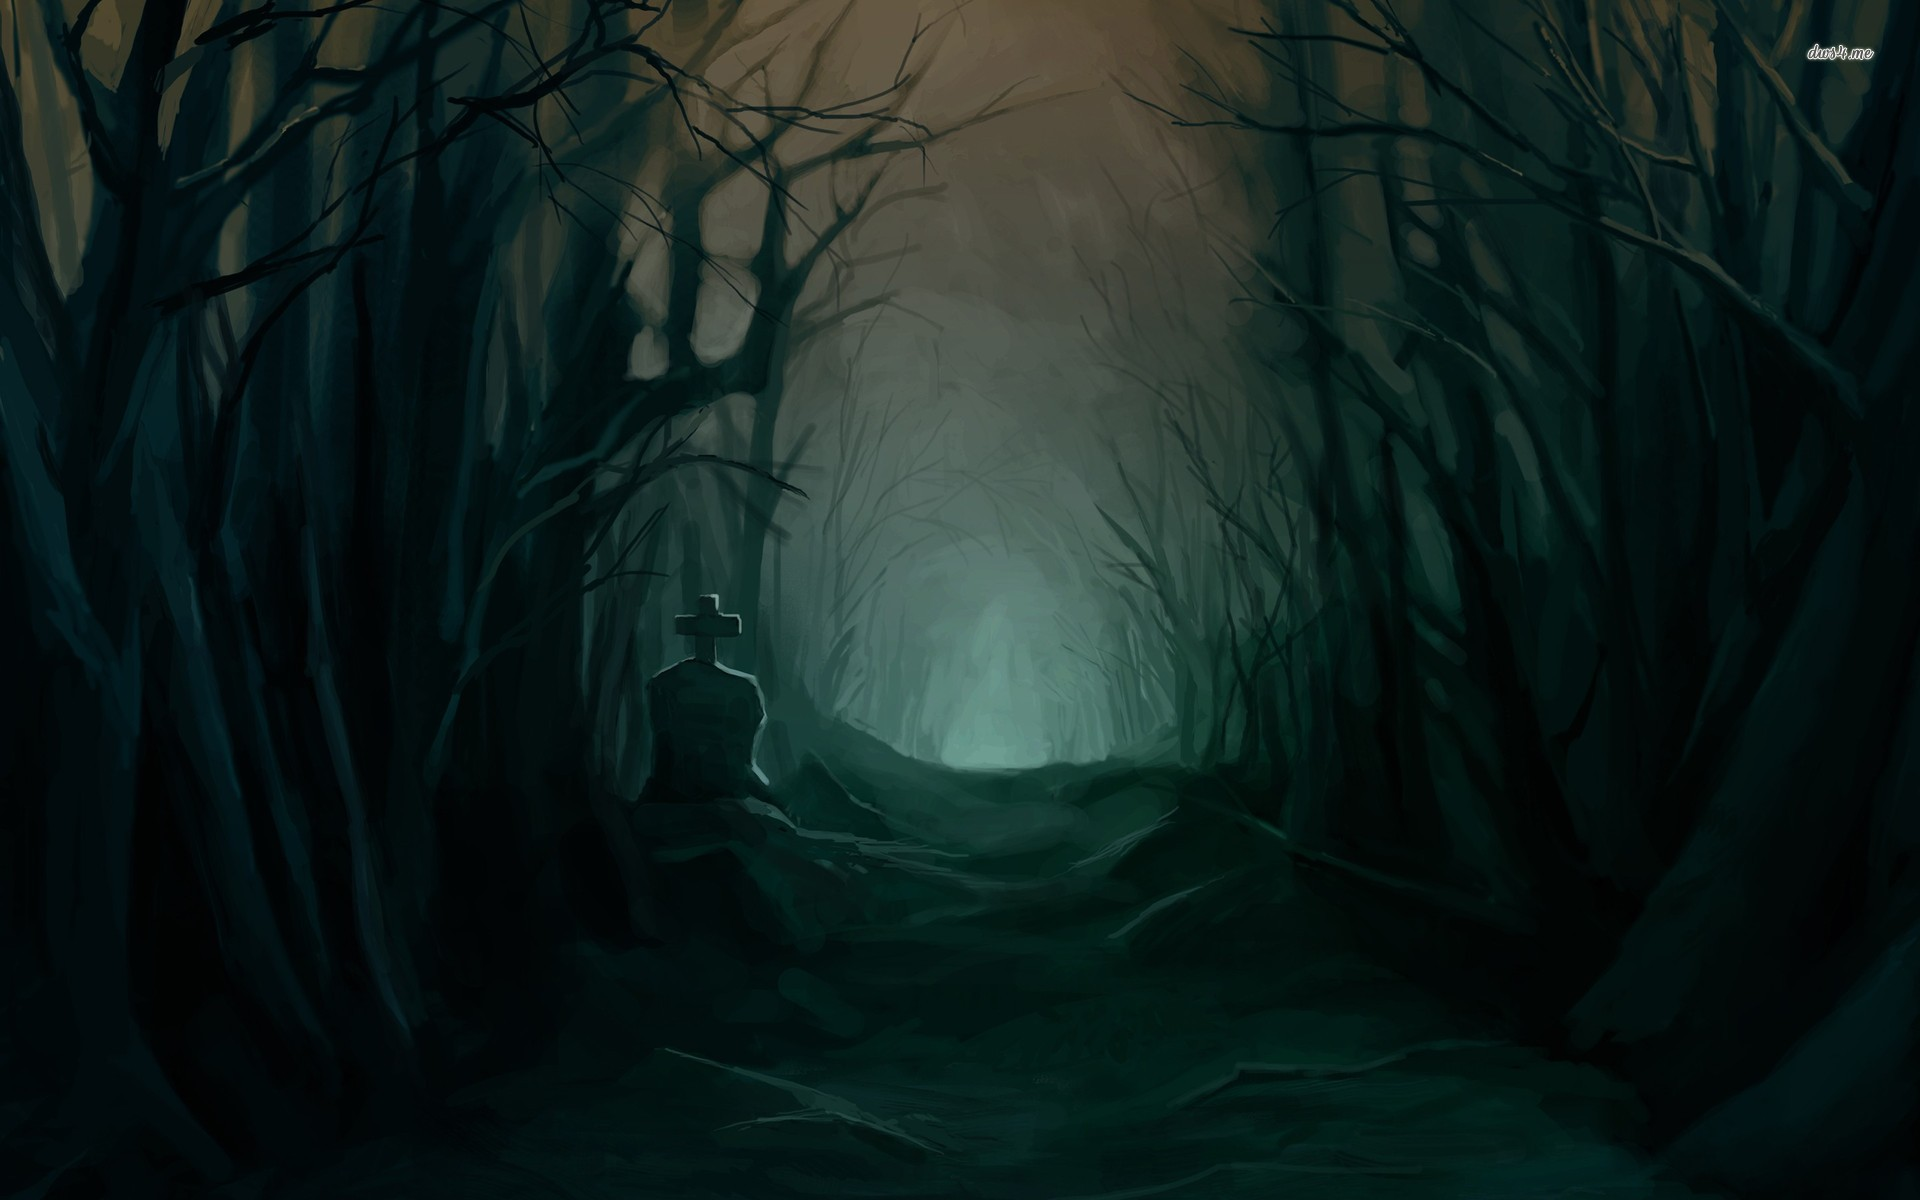 Lost Girl In Dark Forest clipart #10, Download drawings